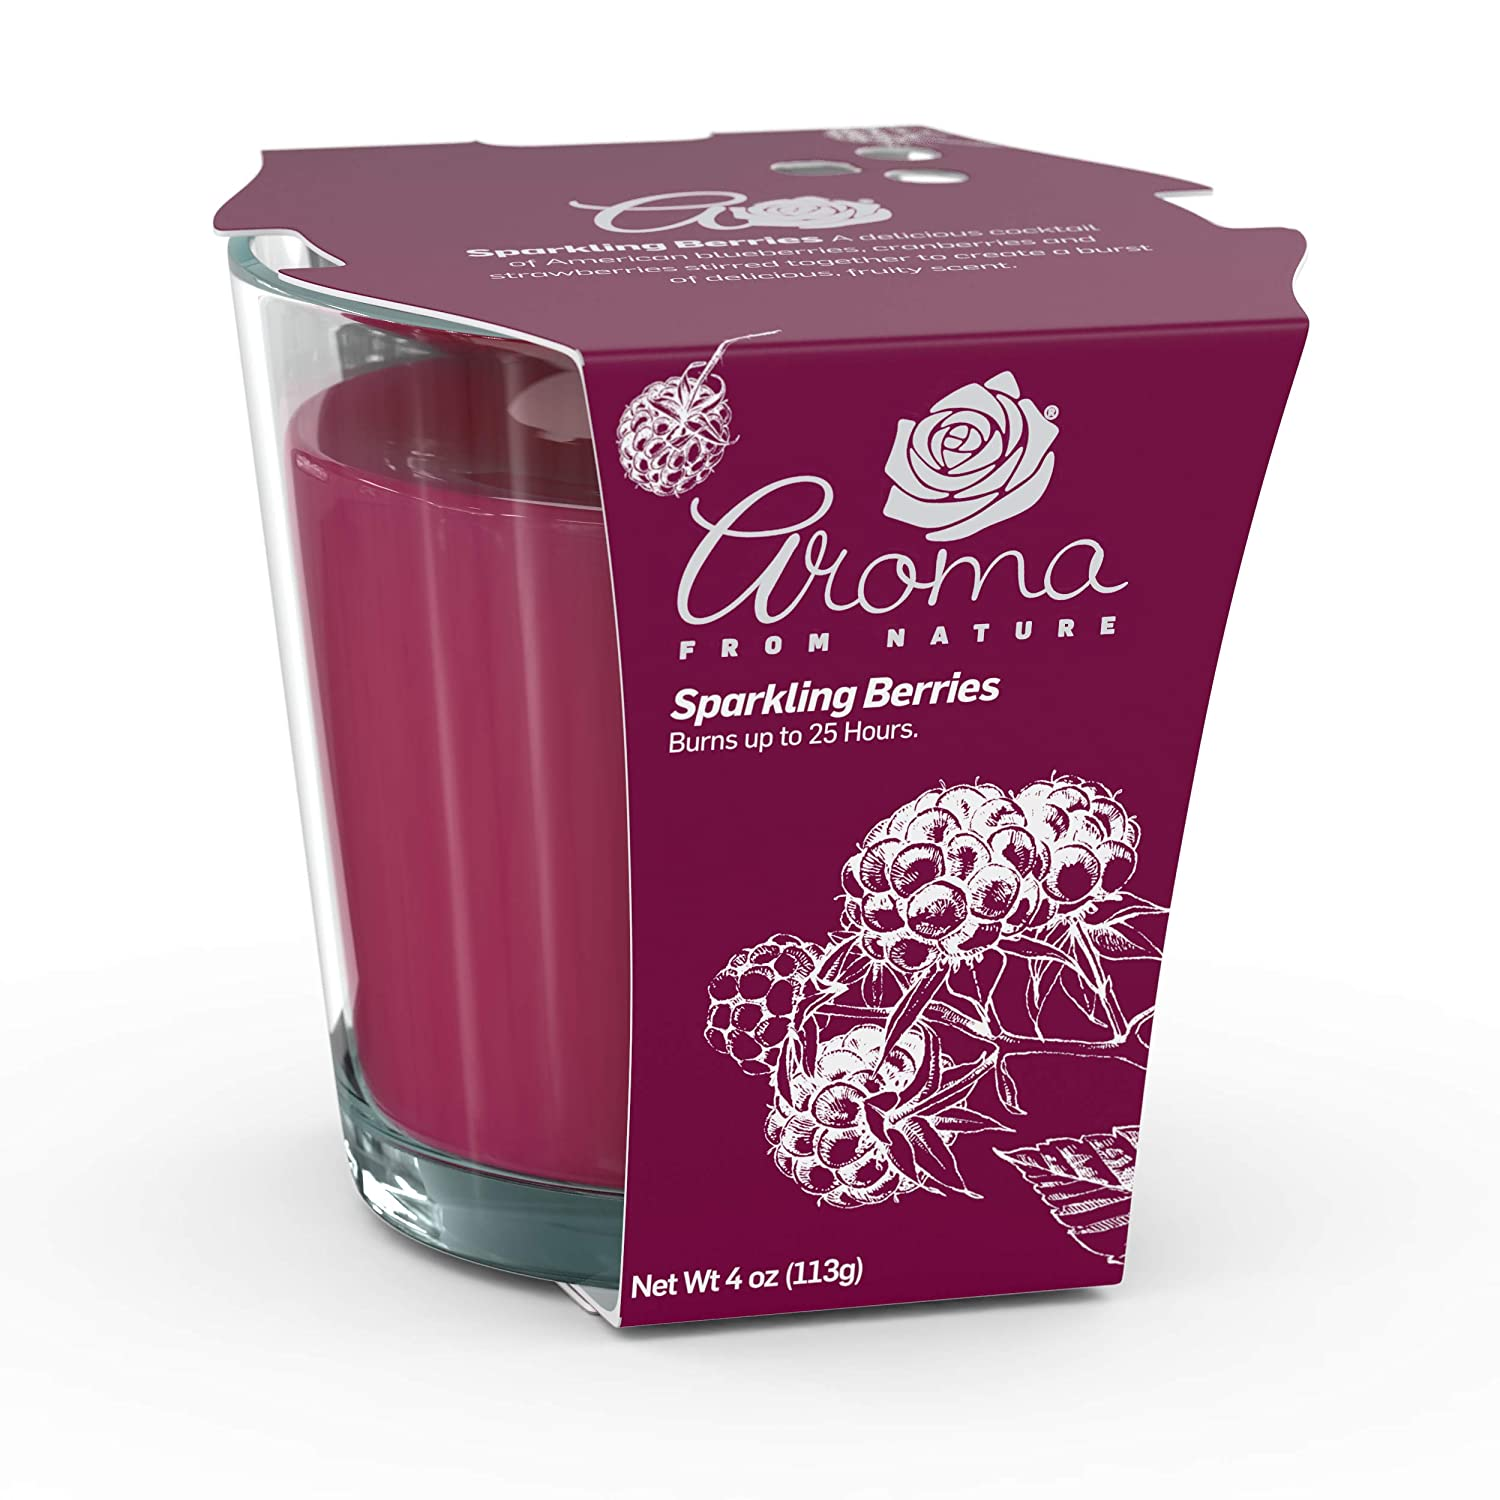 Aroma From Nature Sparkling Berries 4 oz AireCare Scented Candle - 1 Pack - Aromatherapy Candles - Home Fragrance - Apothecary Glass With Single Wick